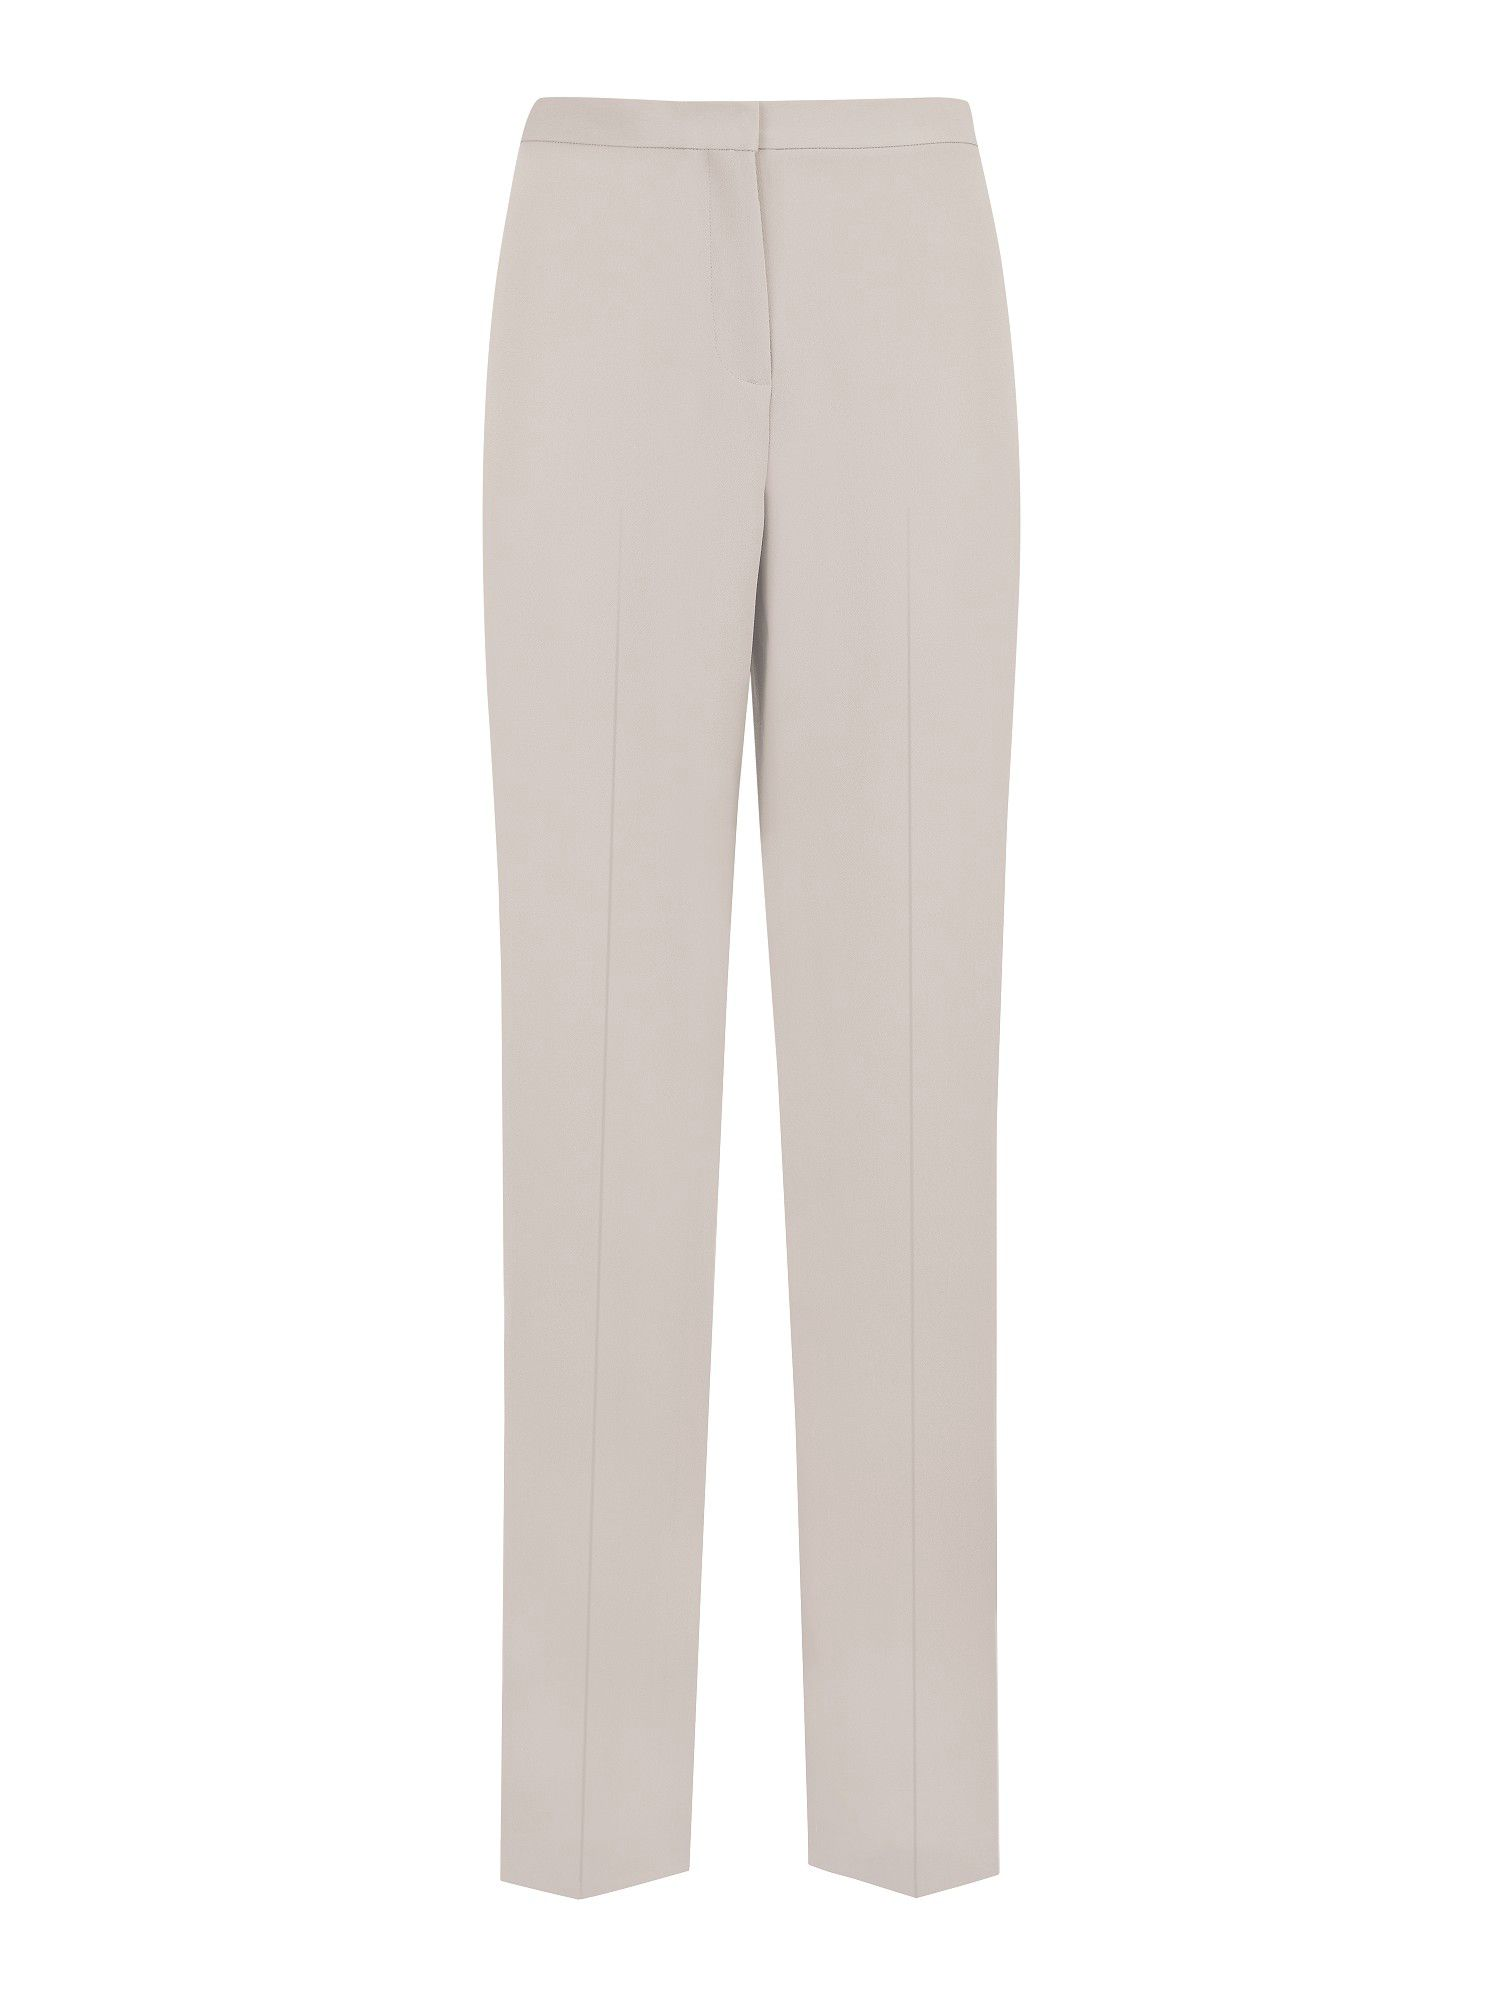 Biscuit tailored trousers